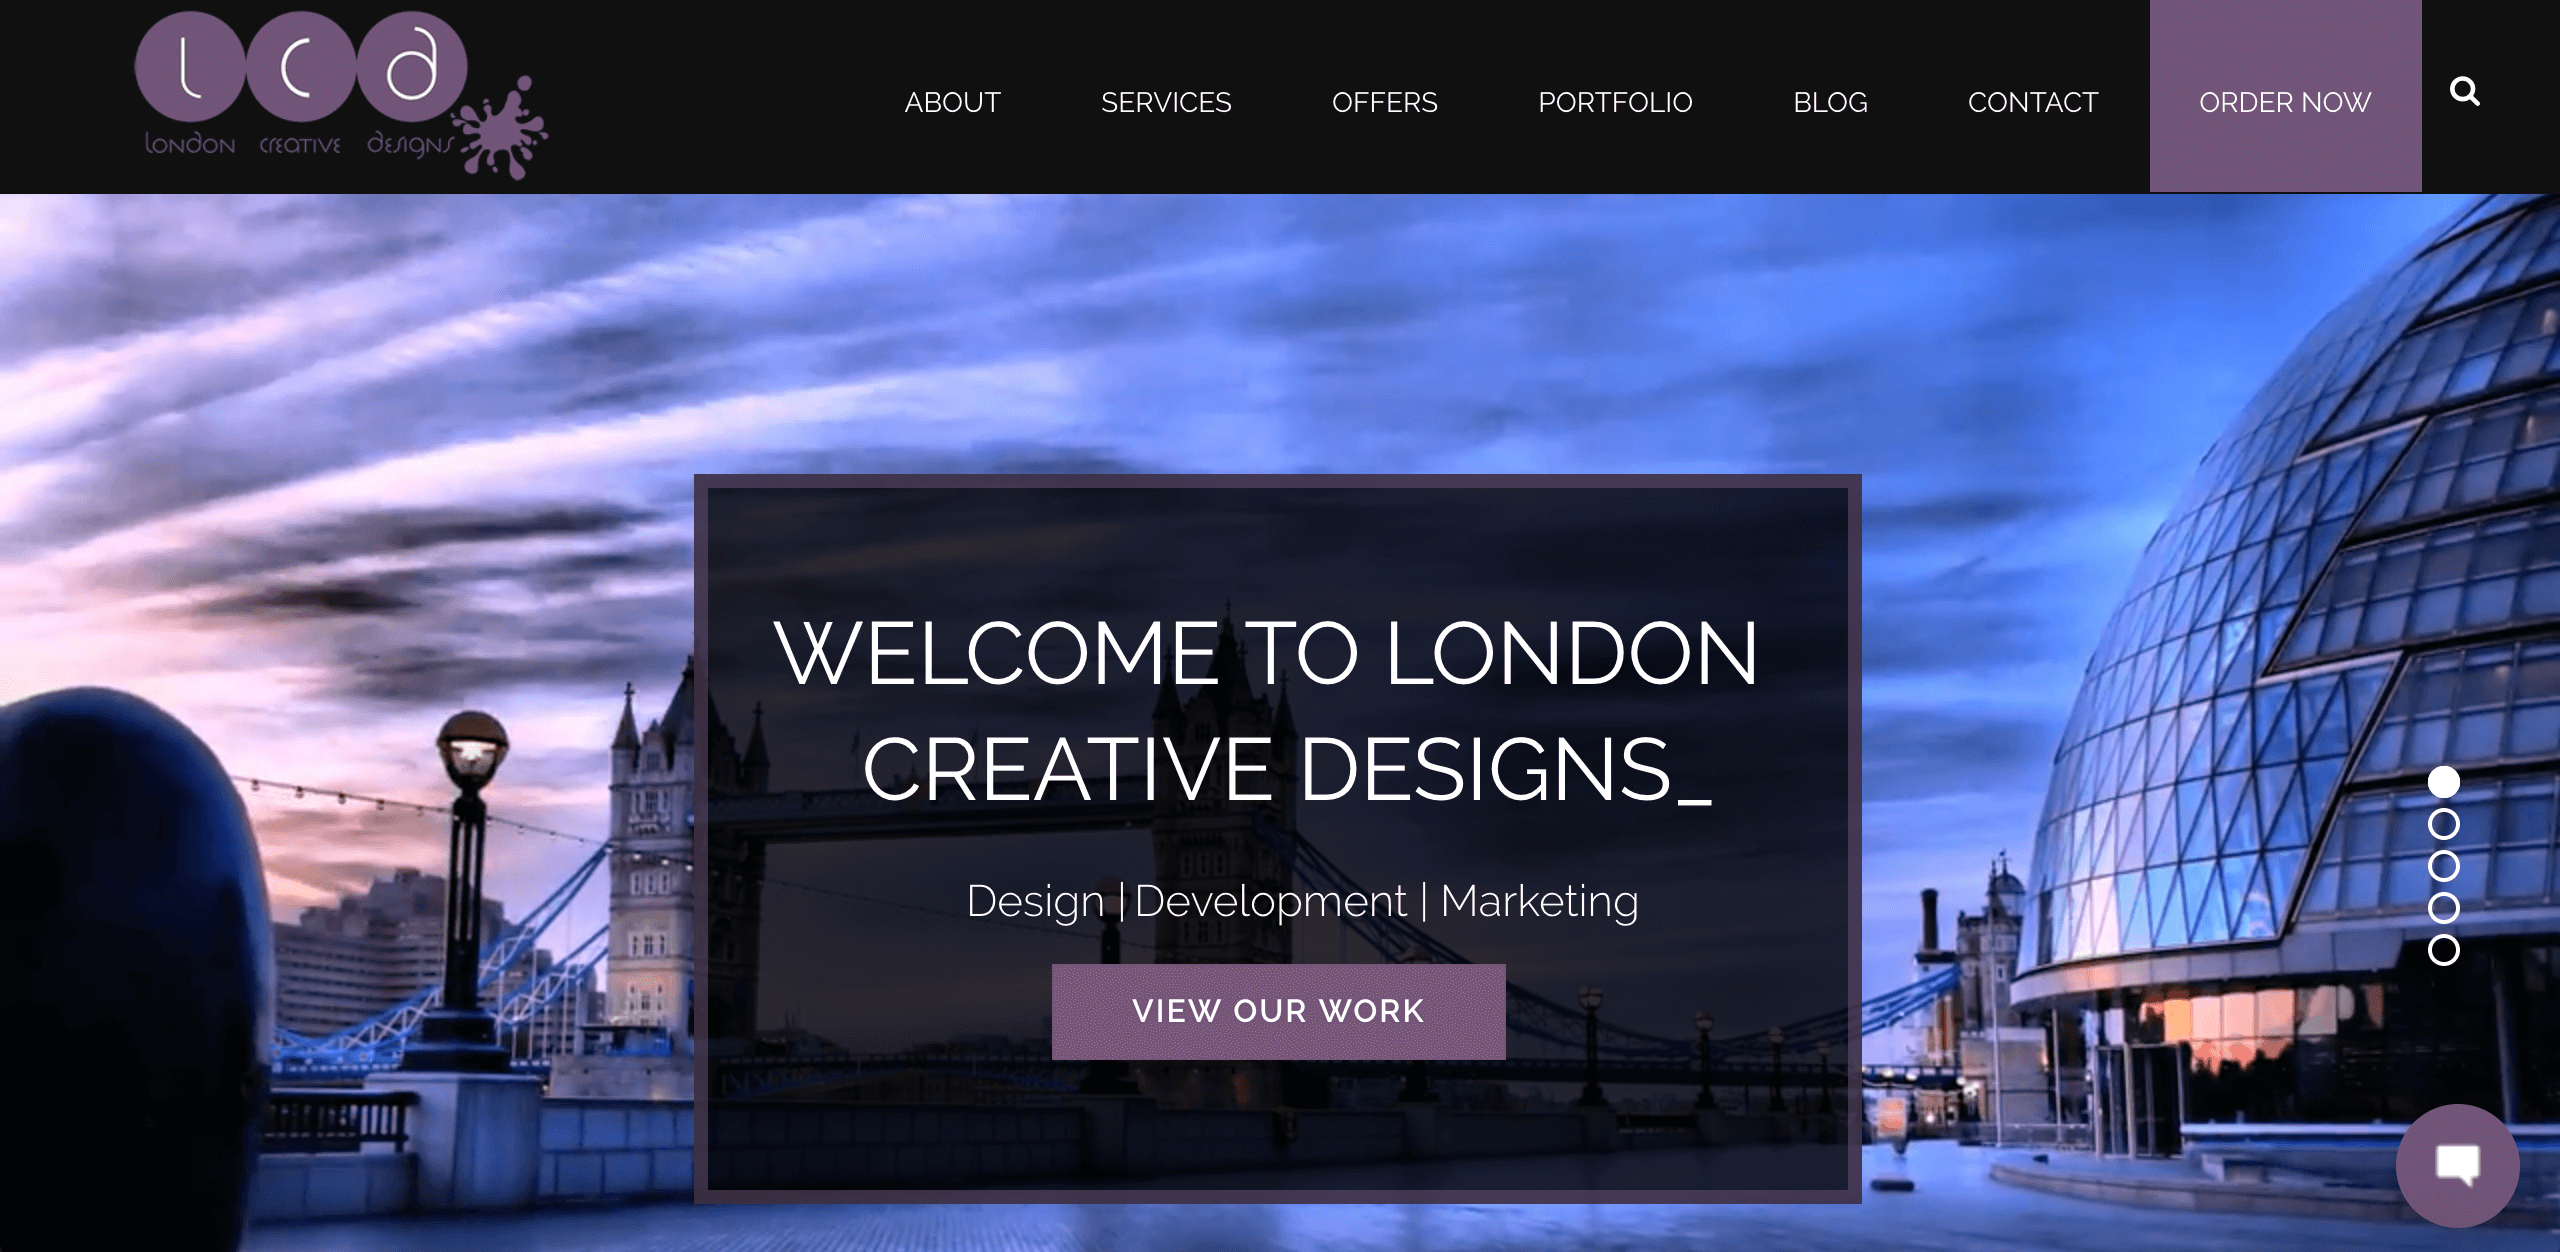 London Creative Designs Website - Top Digital Agency in London